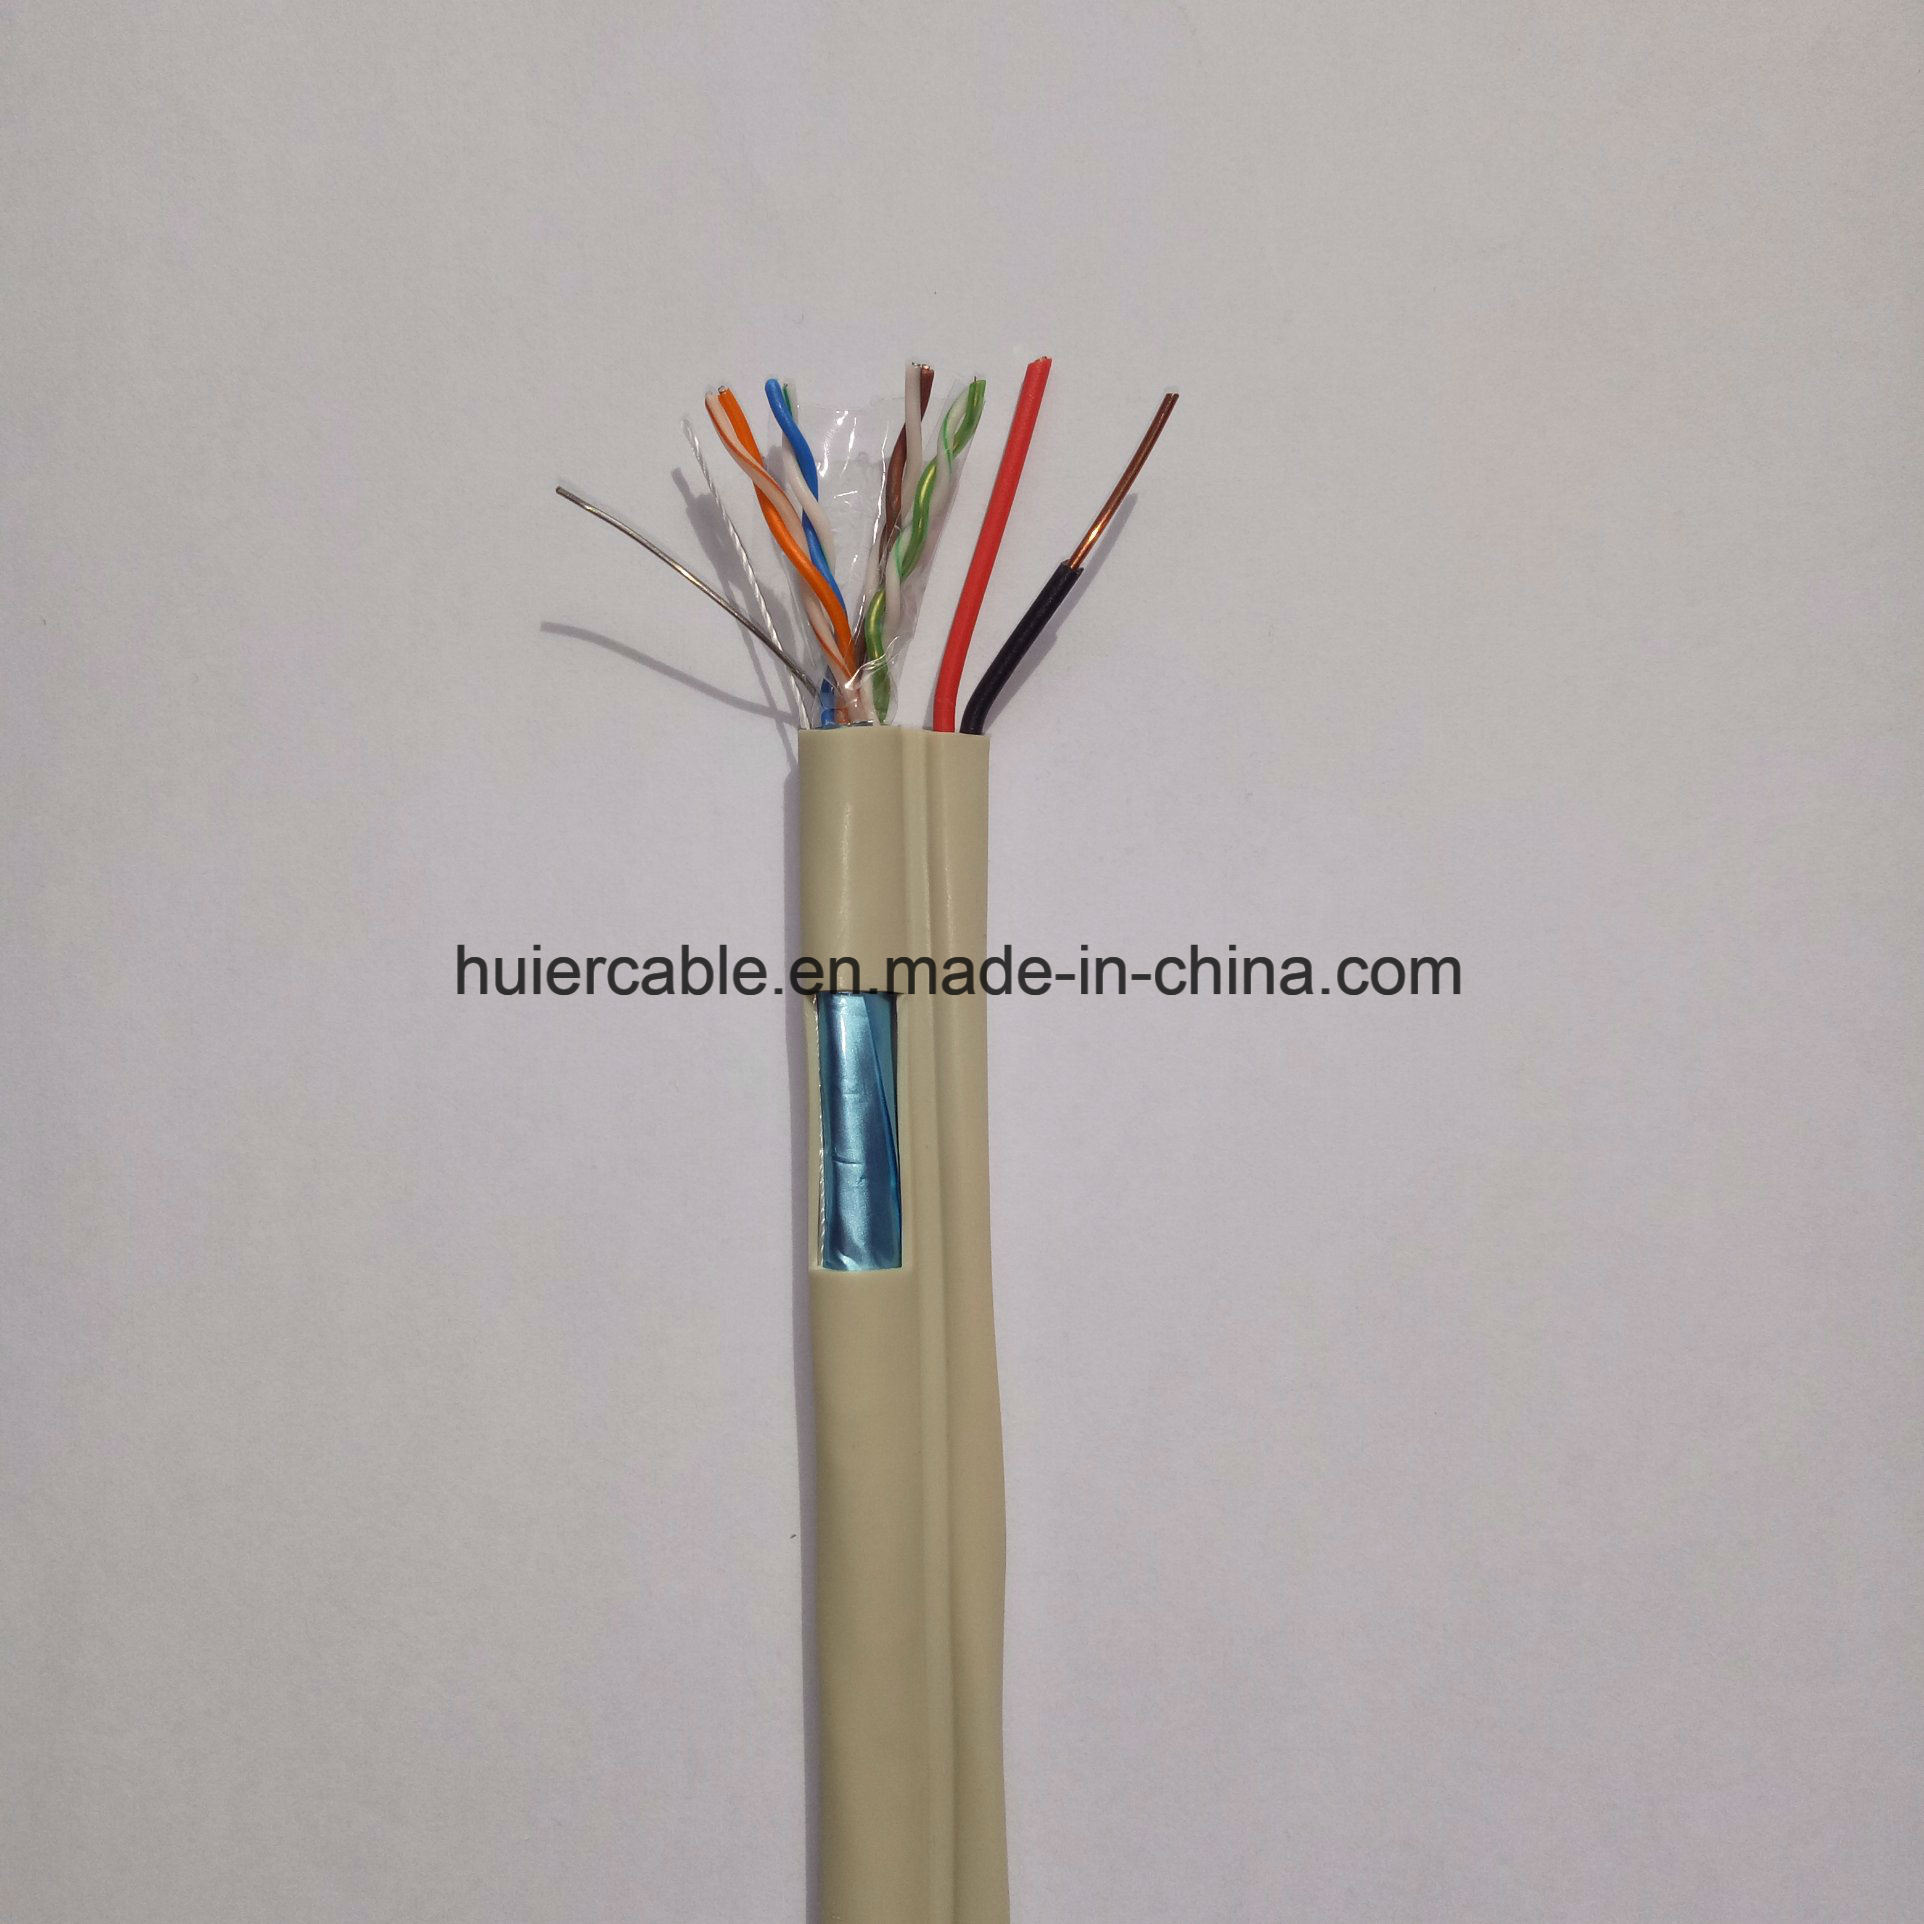 CCTV CAT6 Cable with Power Wires (2DC) for Security System